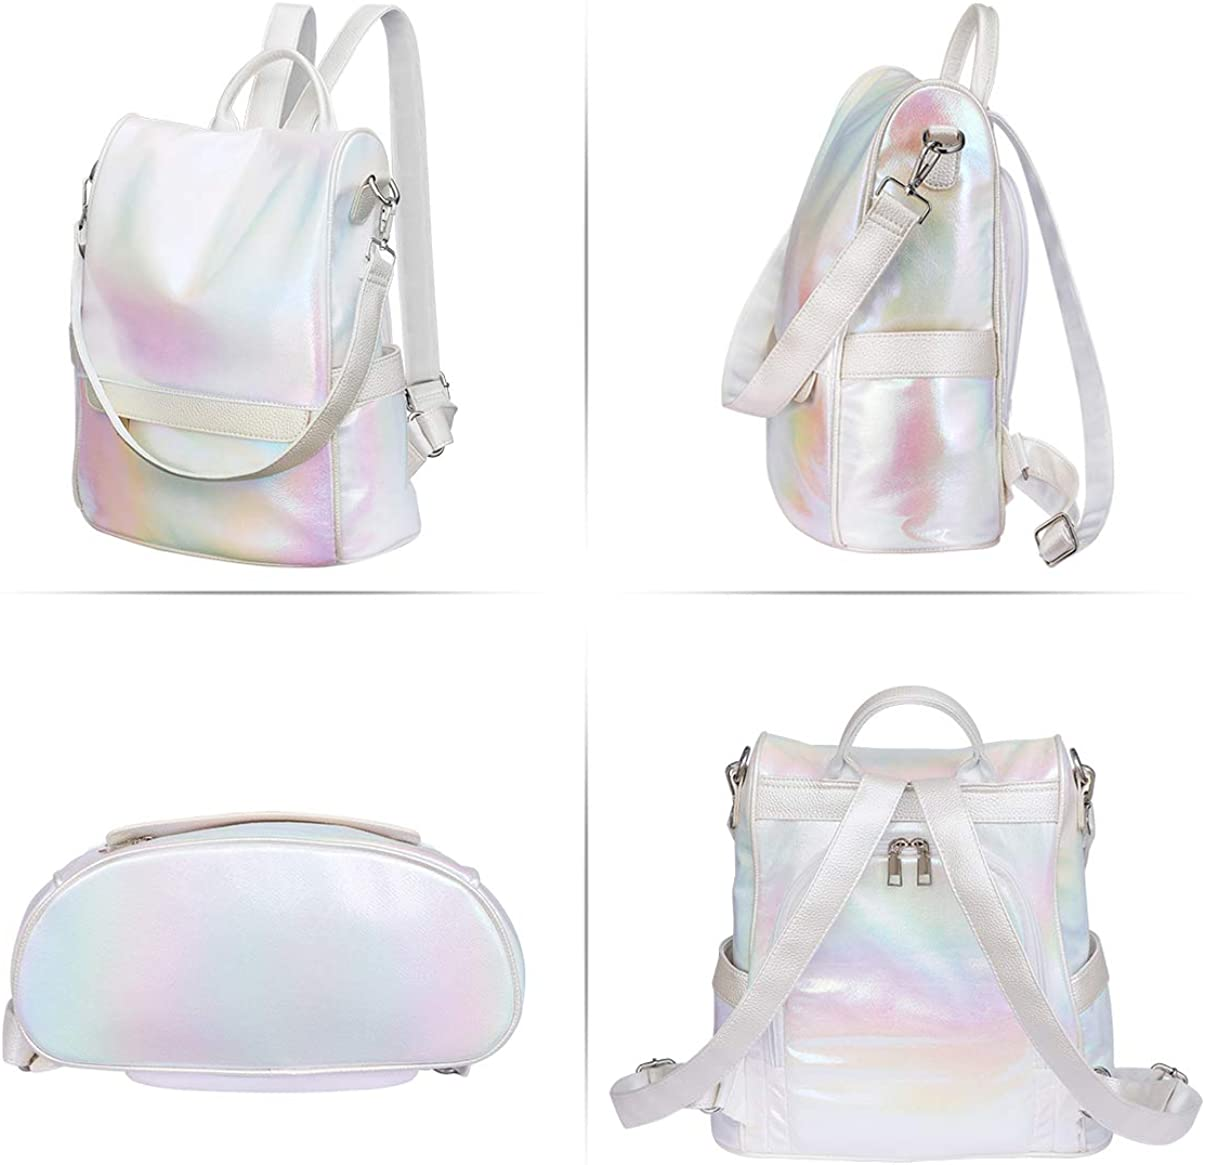 TENDYCOCO Anti-theft Backpack Purse Convertible Shoulder Bag Fashion Backpack for Women